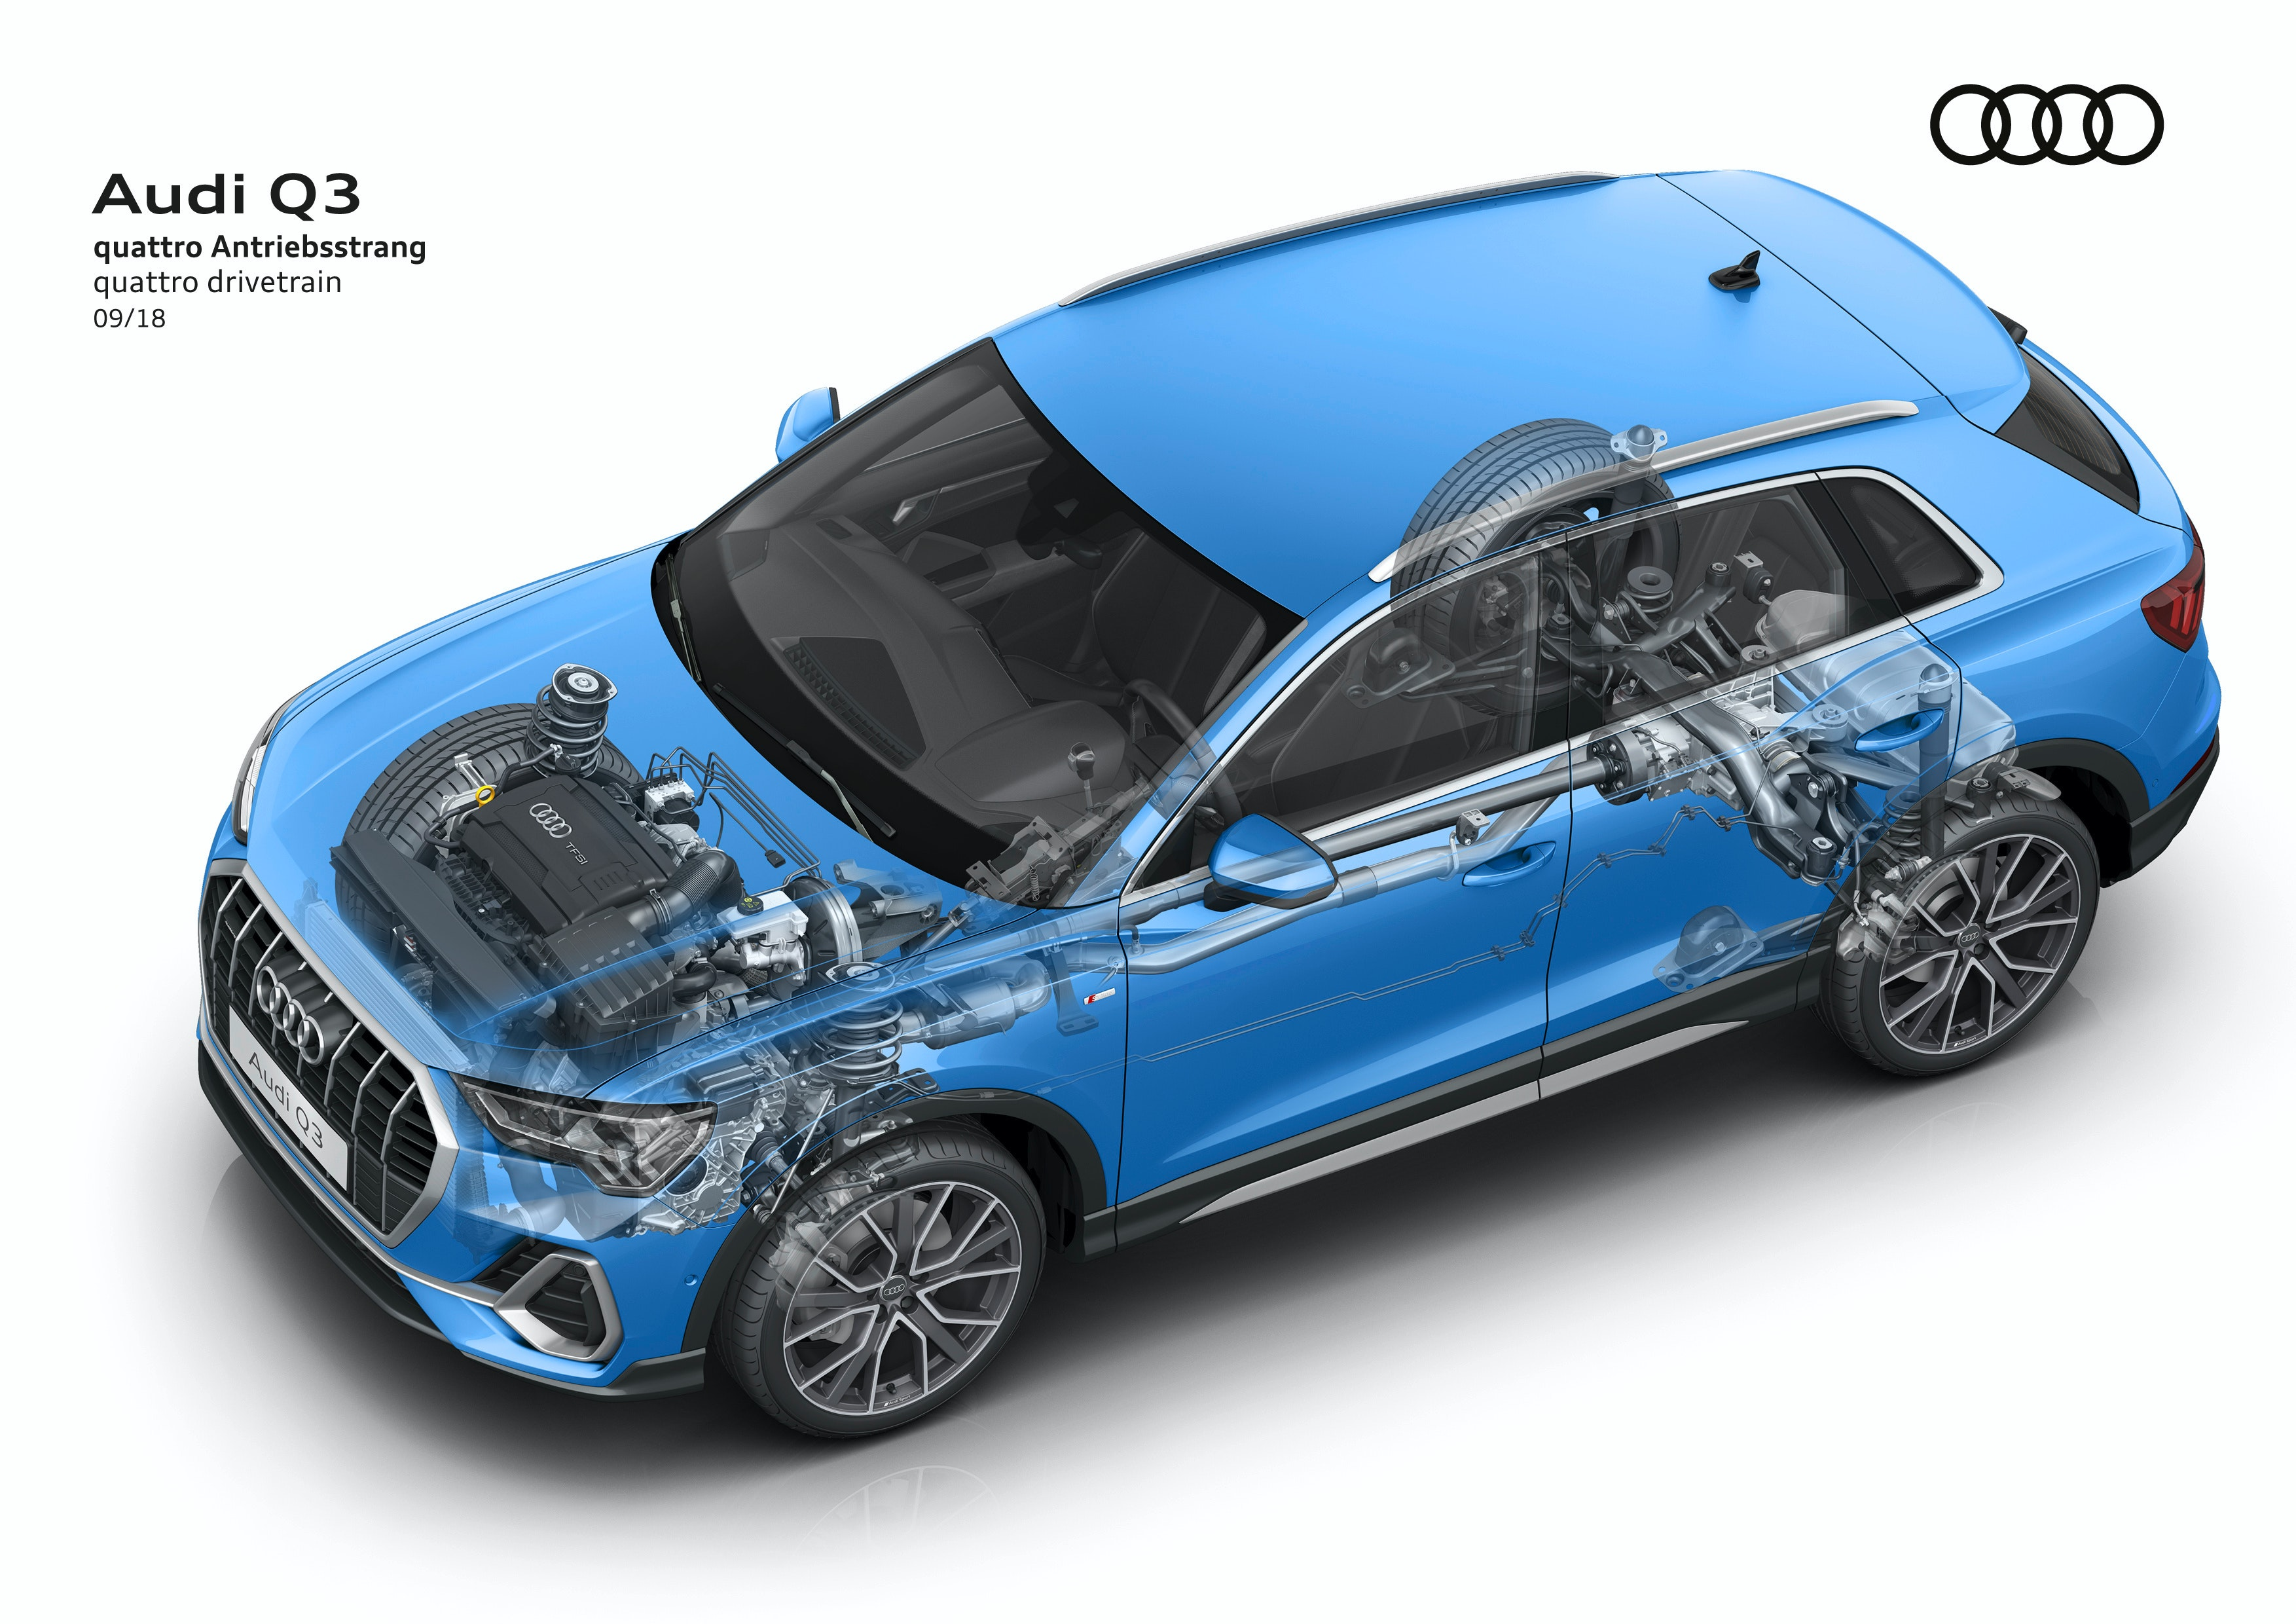 Audi 4 2 Engine Diagram Front Just Another Wiring Blog 0 Tfsi S Quattro All Wheel Drive System Explained Carwow Rh Co Uk 2001 Ford F150 2l Imrc Actuator A4